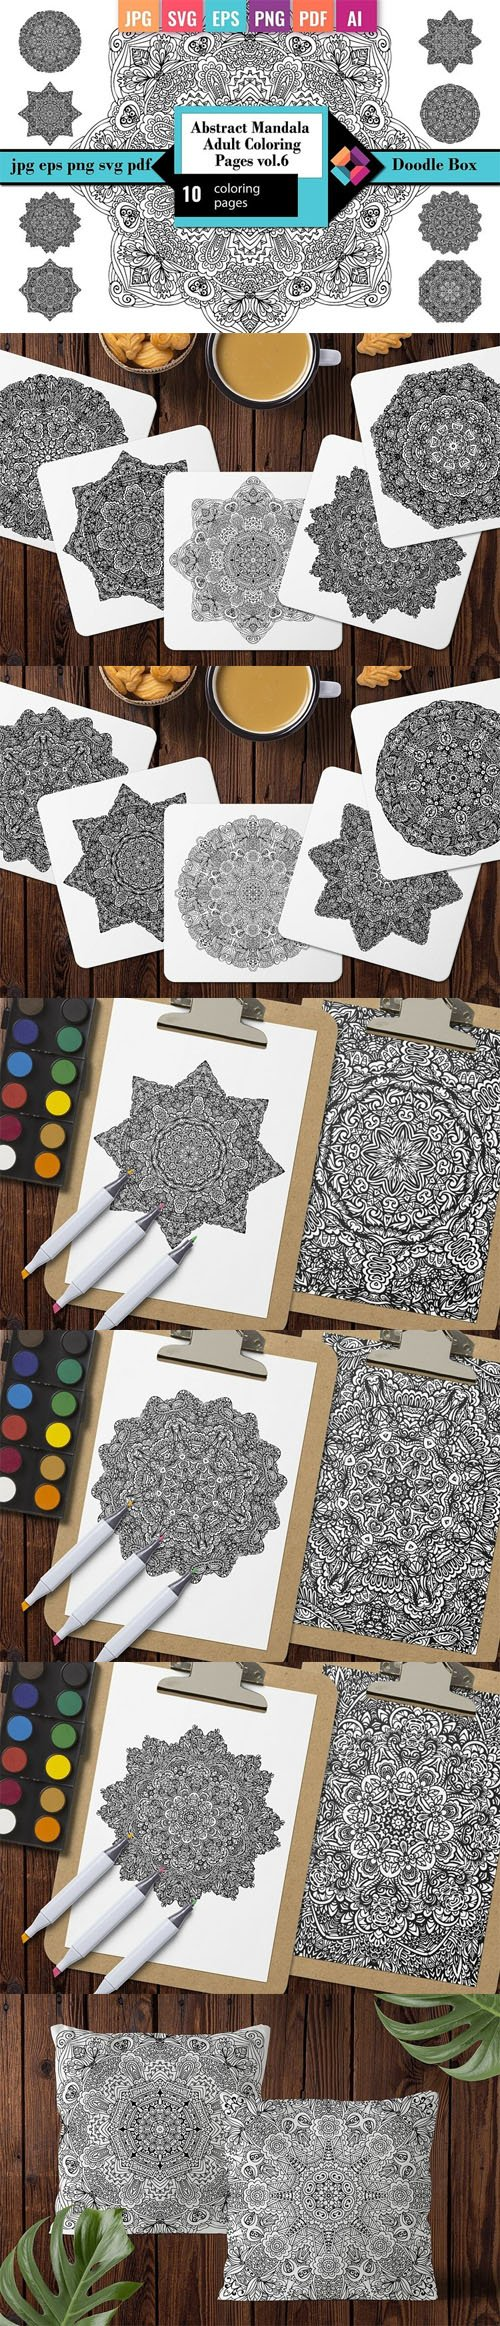 Antistress Mandala Adult Coloring Pages - 10 Coloring Pages